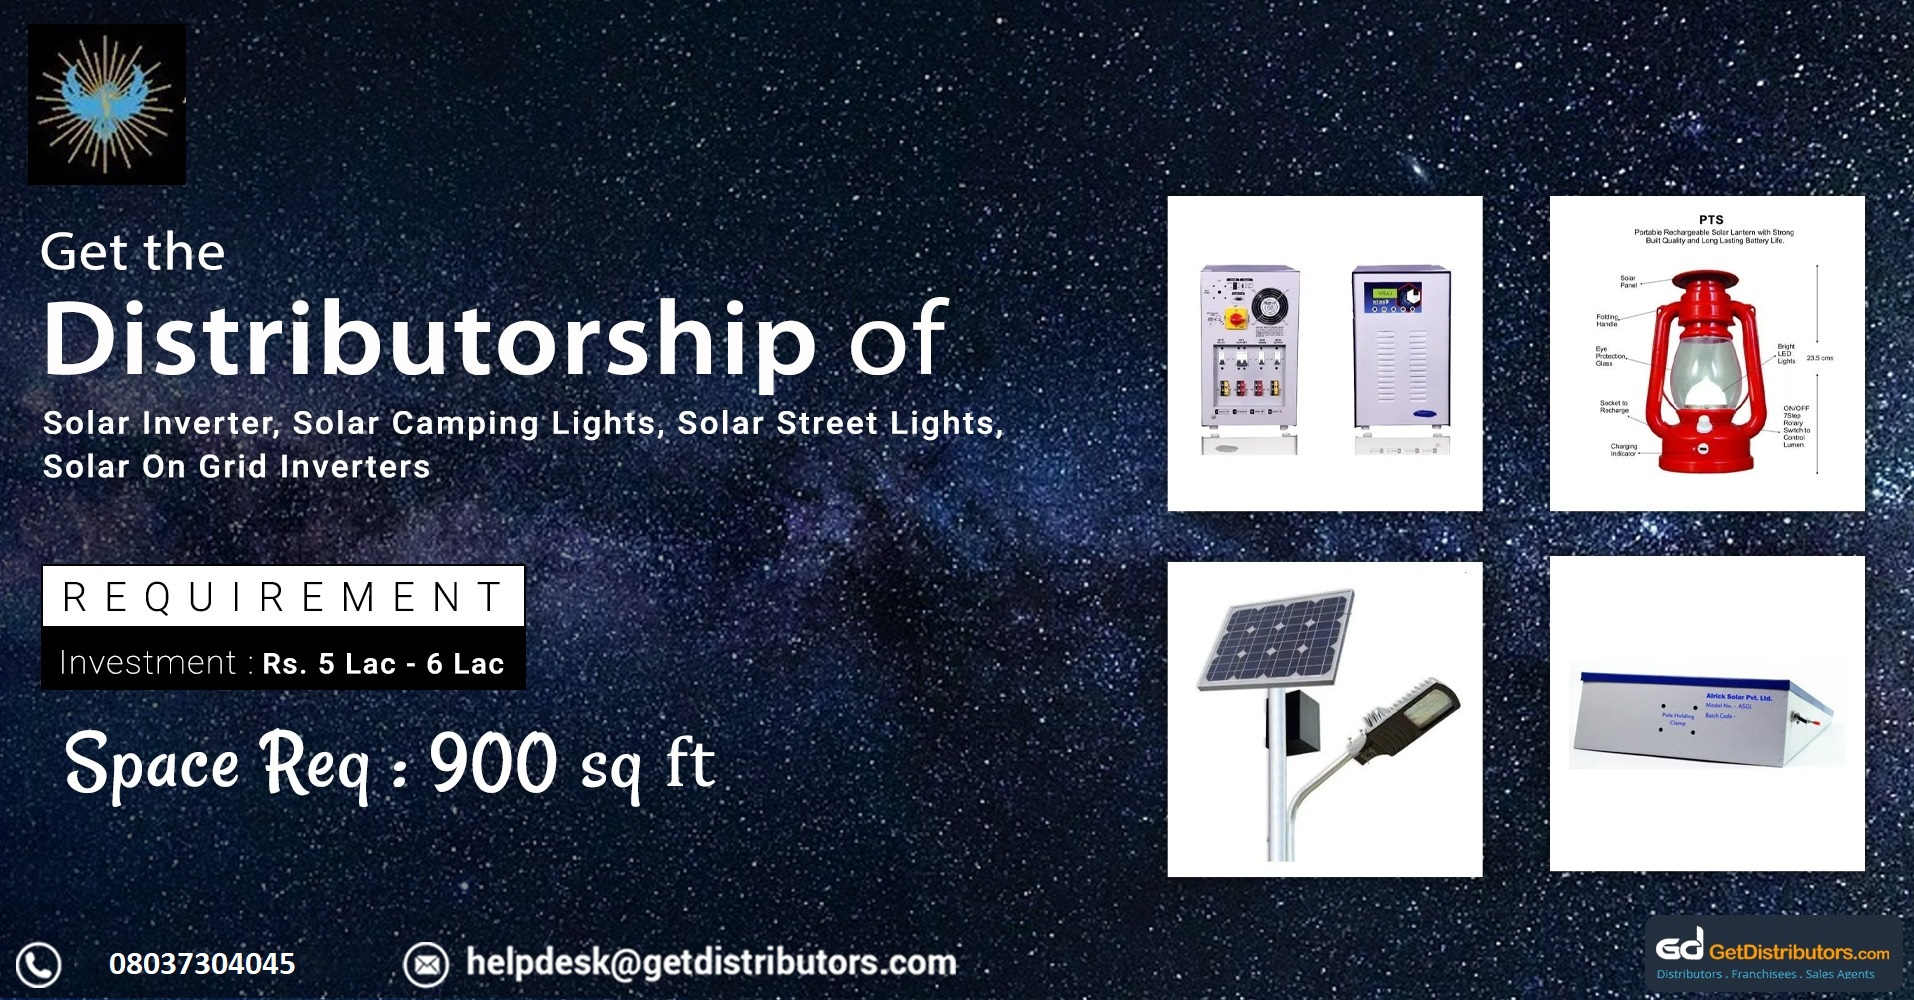 Wide range of solar products and equipment for distribution